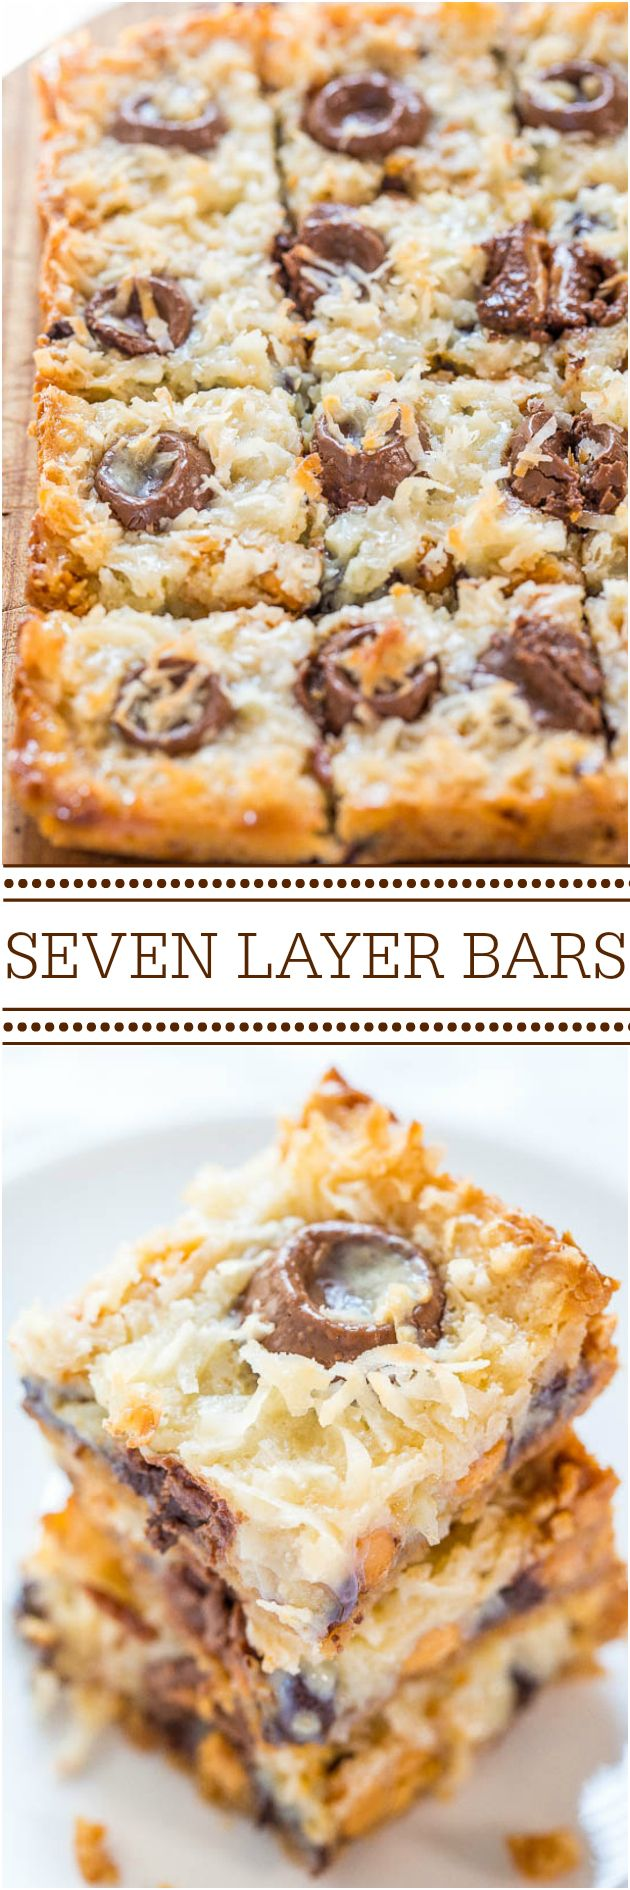 Classic Bars, Seven Layer Bars, Everything Bar, Cookies Bars, Rolo Bar ...